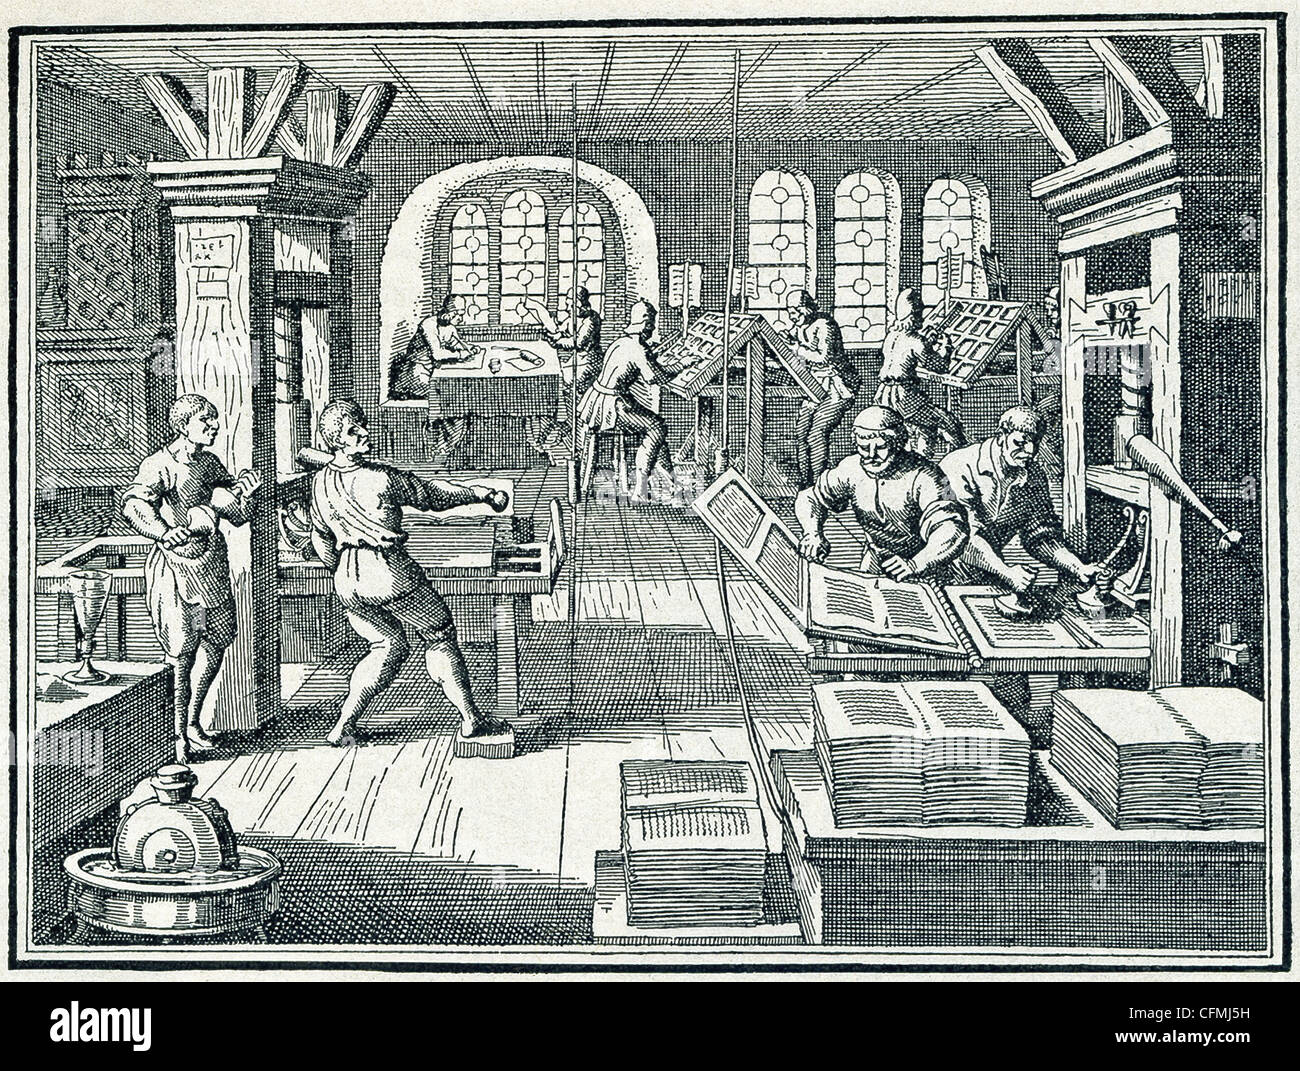 The Swiss artist Jost Ammans did this woodcut illustration of the interior of a printing press house in late1500s. - Stock Image